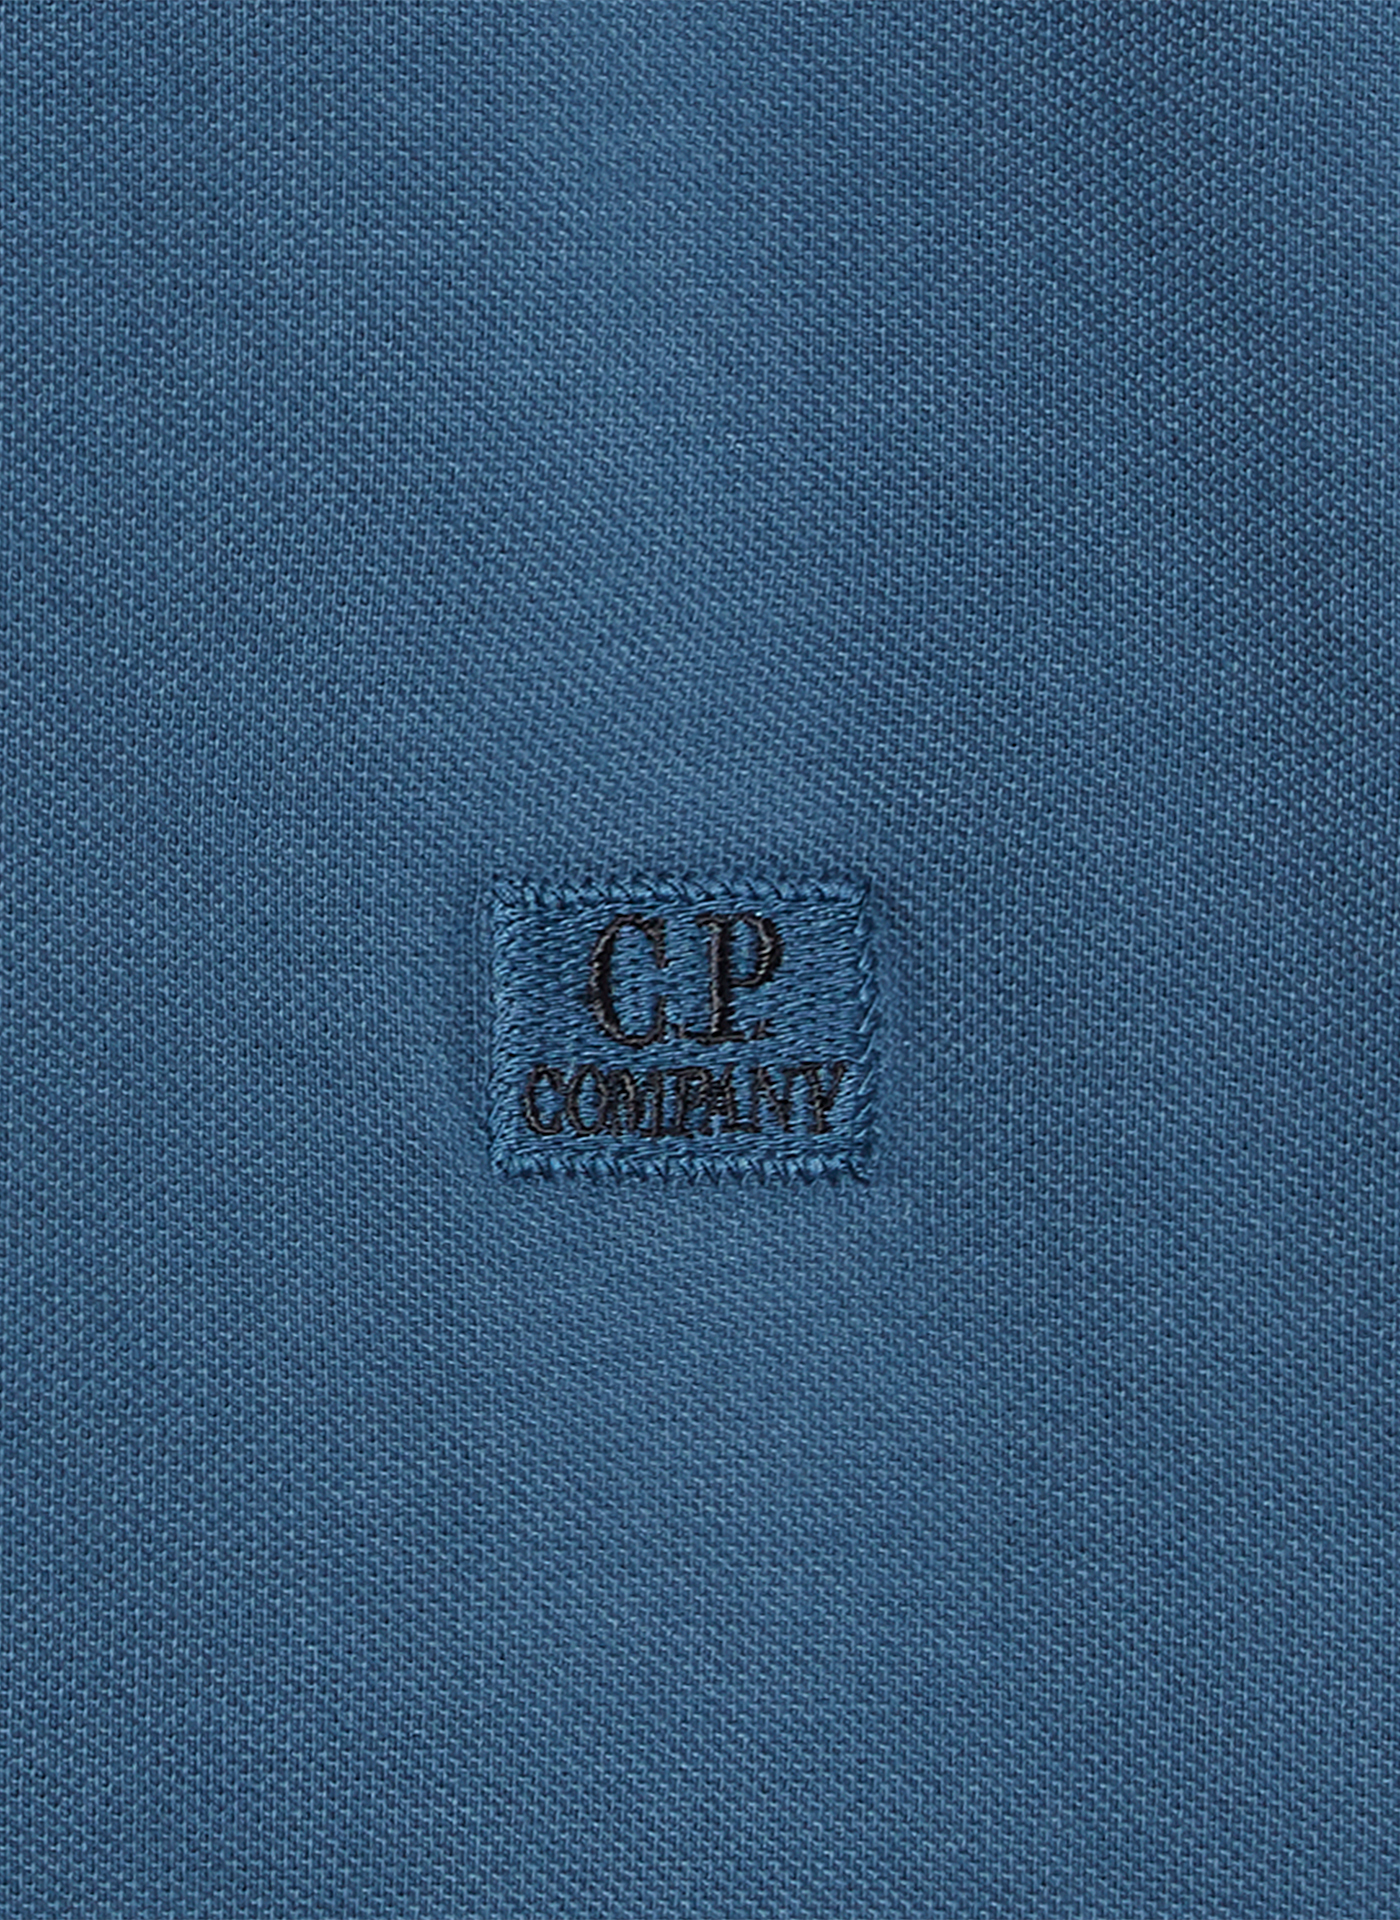 C.P. company logo embroidered on light navy blue textile